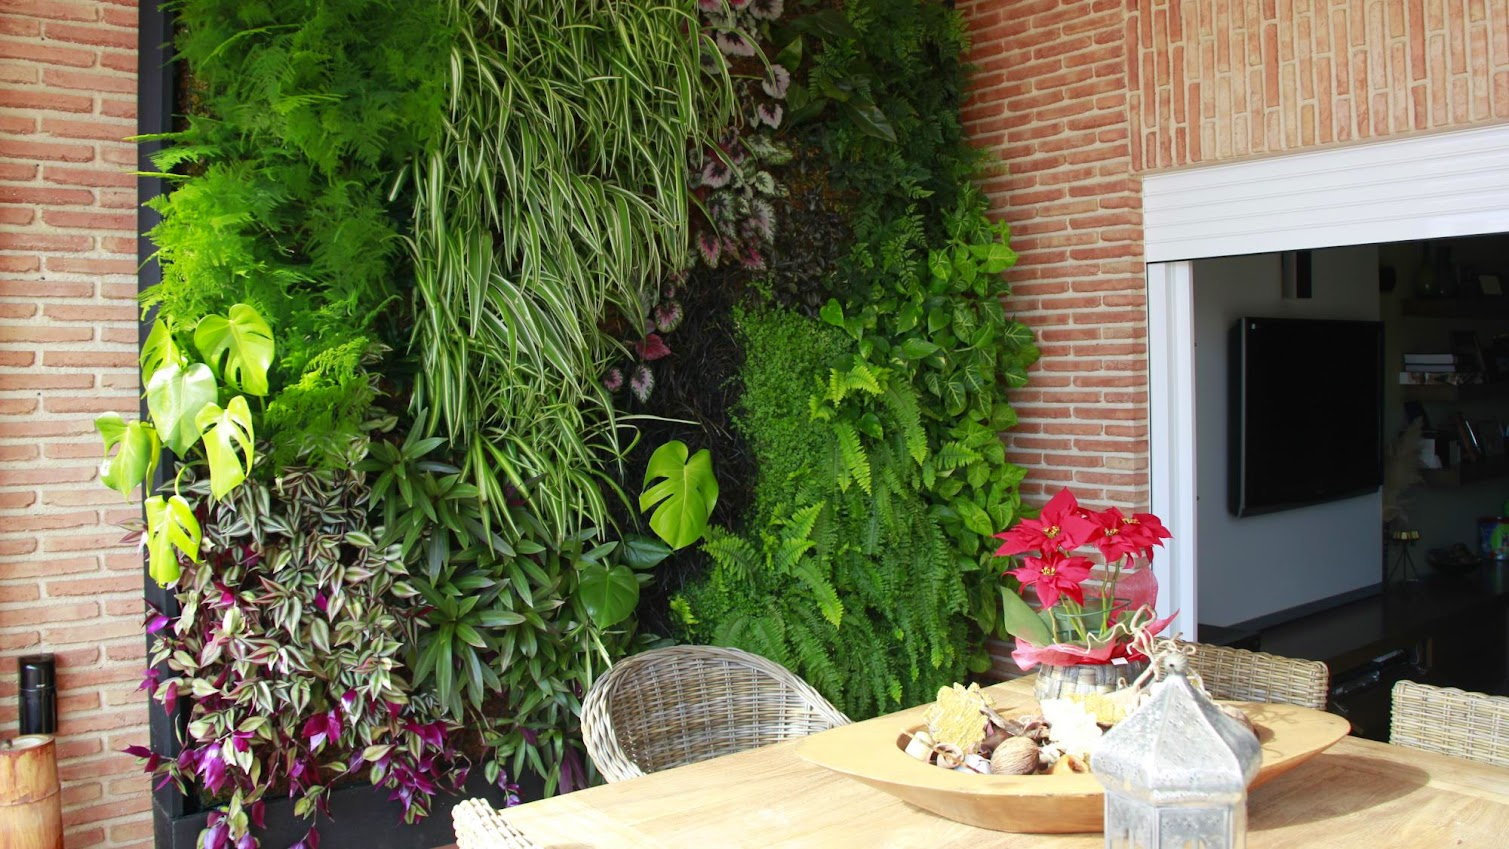 jardín vertical interior jardines verticales interiores ecosistema pared vegetal verde green wall